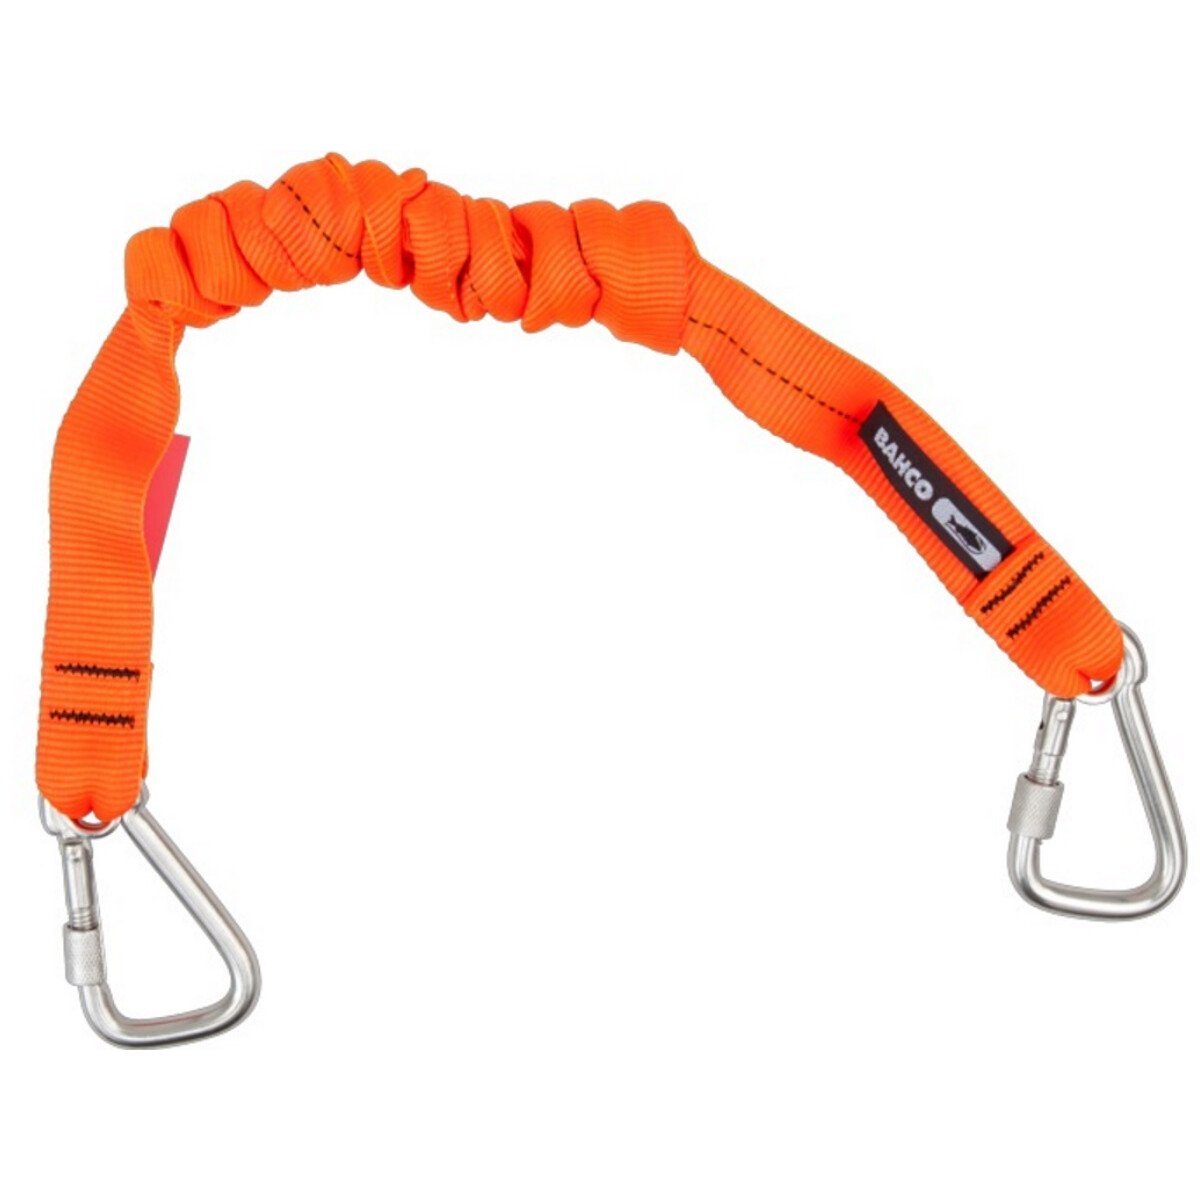 Bahco 3875-LY10 Lanyard for 12kg with Fixed Carabiners